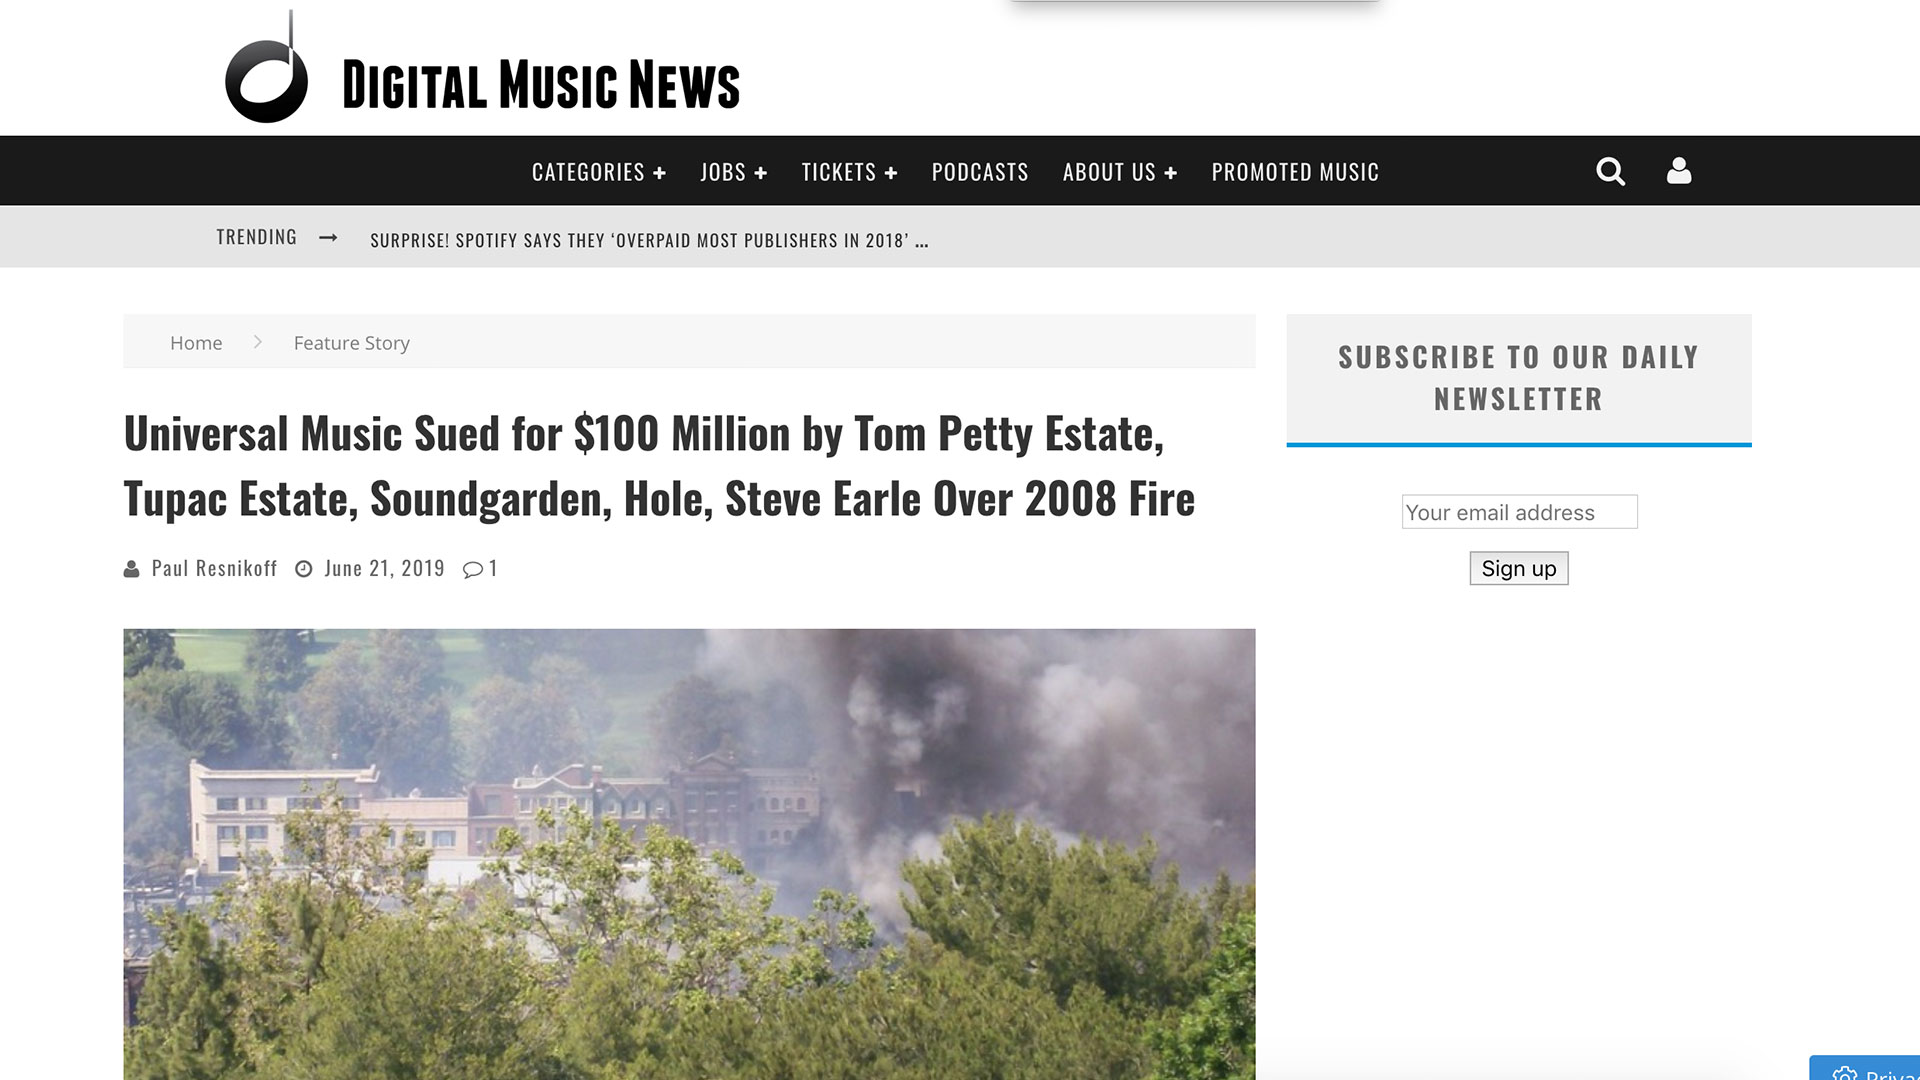 Fairness Rocks News Universal Music Sued for $100 Million by Tom Petty Estate, Tupac Estate, Soundgarden, Hole, Steve Earle Over 2008 Fire